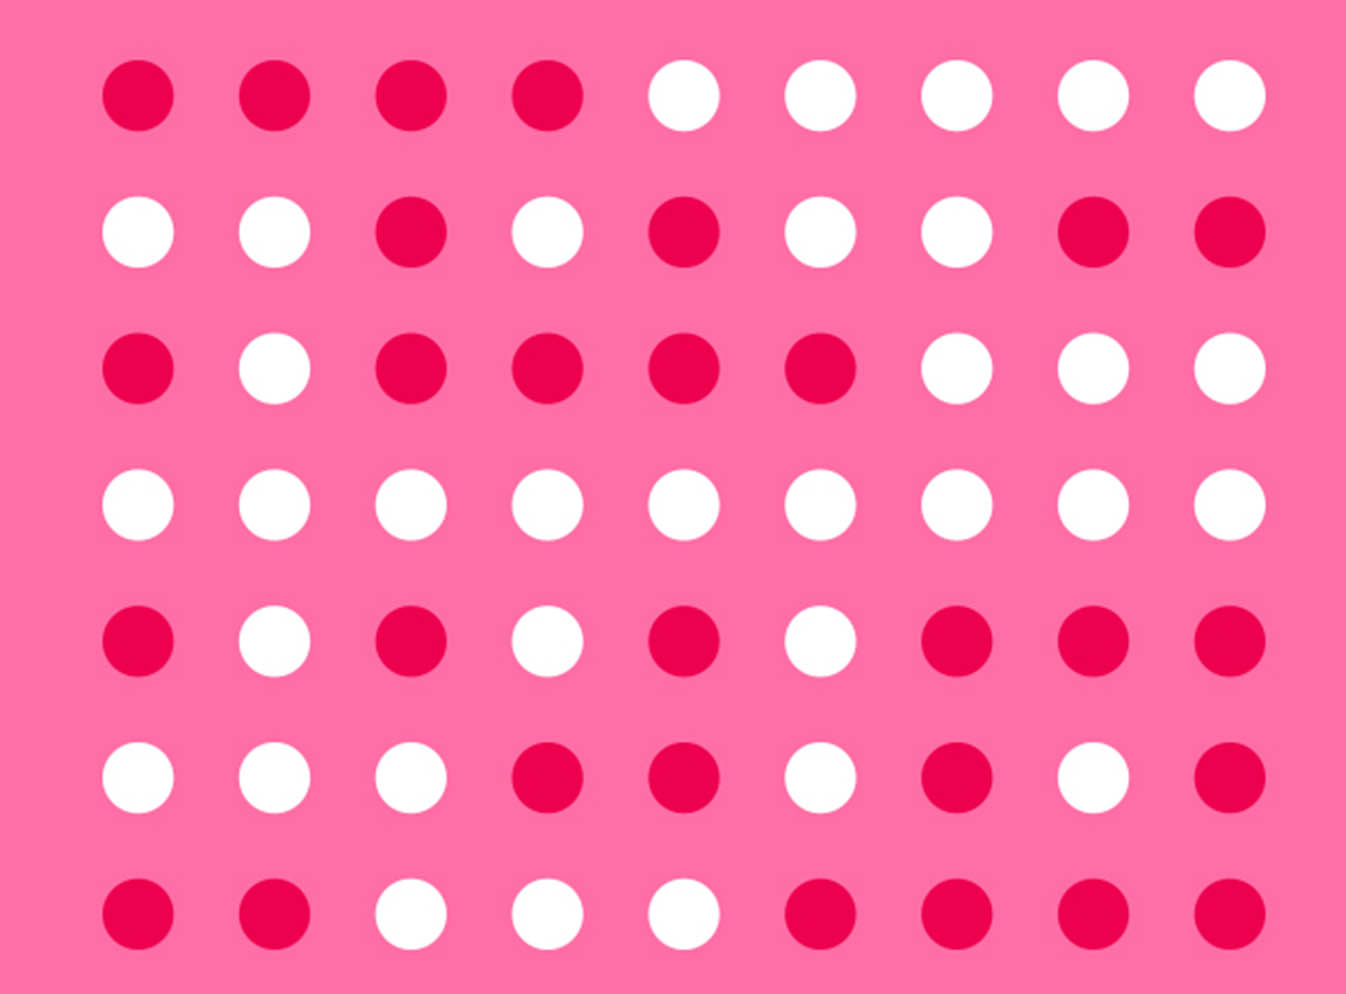 Red and white dots on pink background